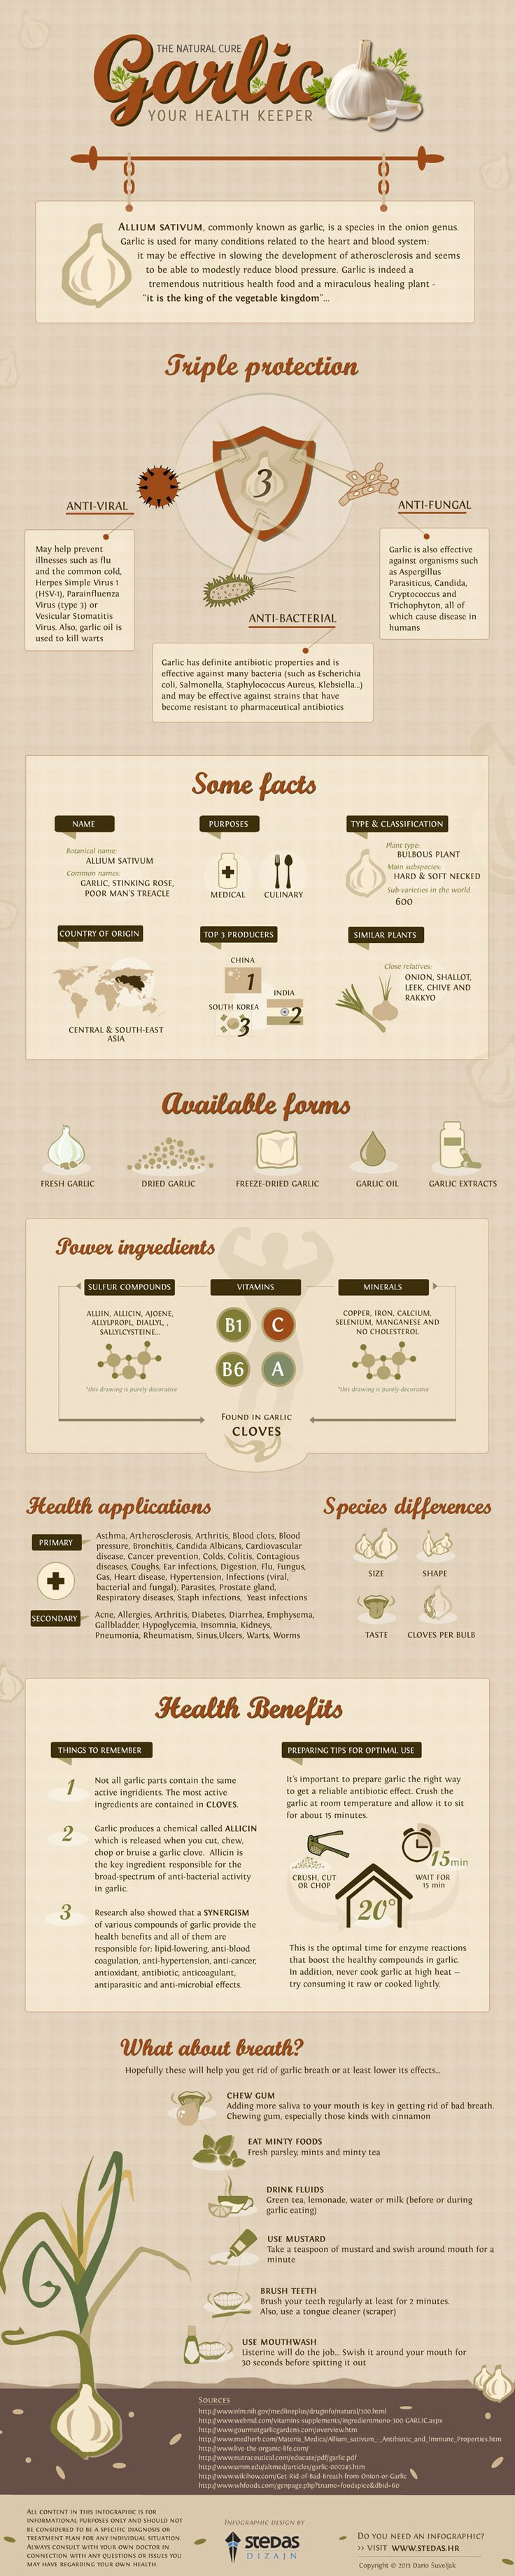 This infographic reveals some surprising facts about garlic |  #survivallife www.survivallife.com